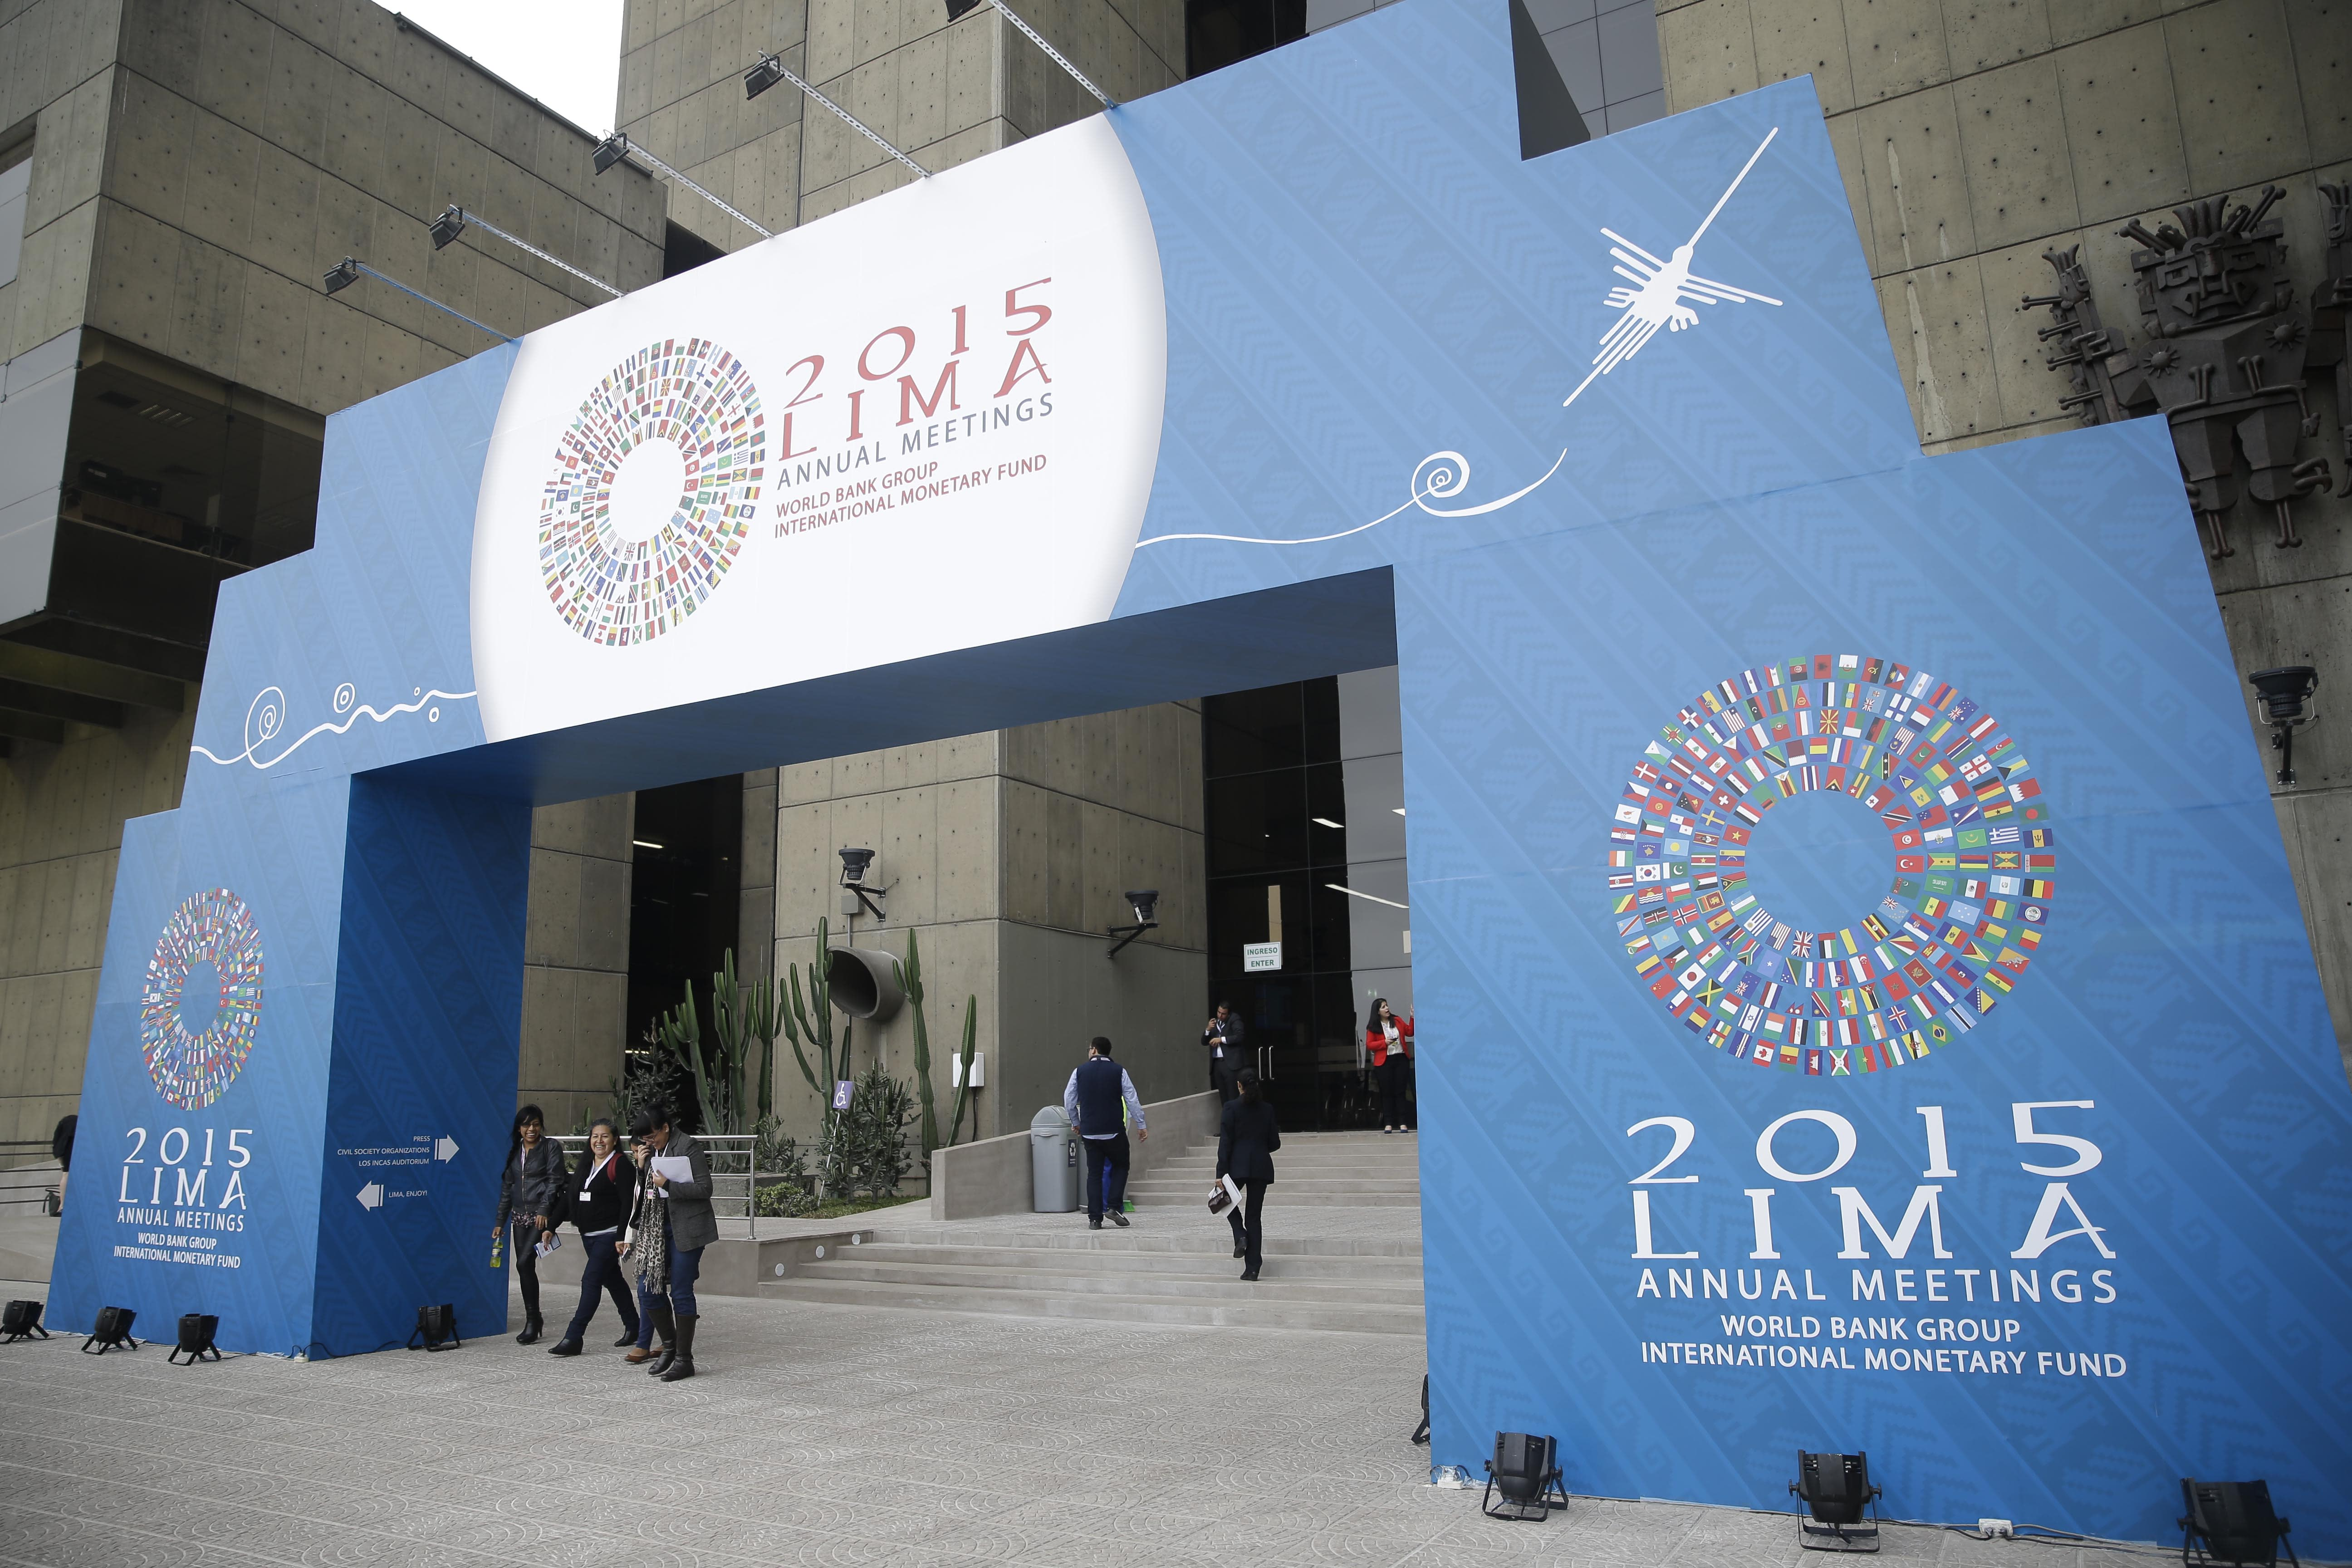 IMF: Up to $3 trillion in over-borrowing in emerging markets